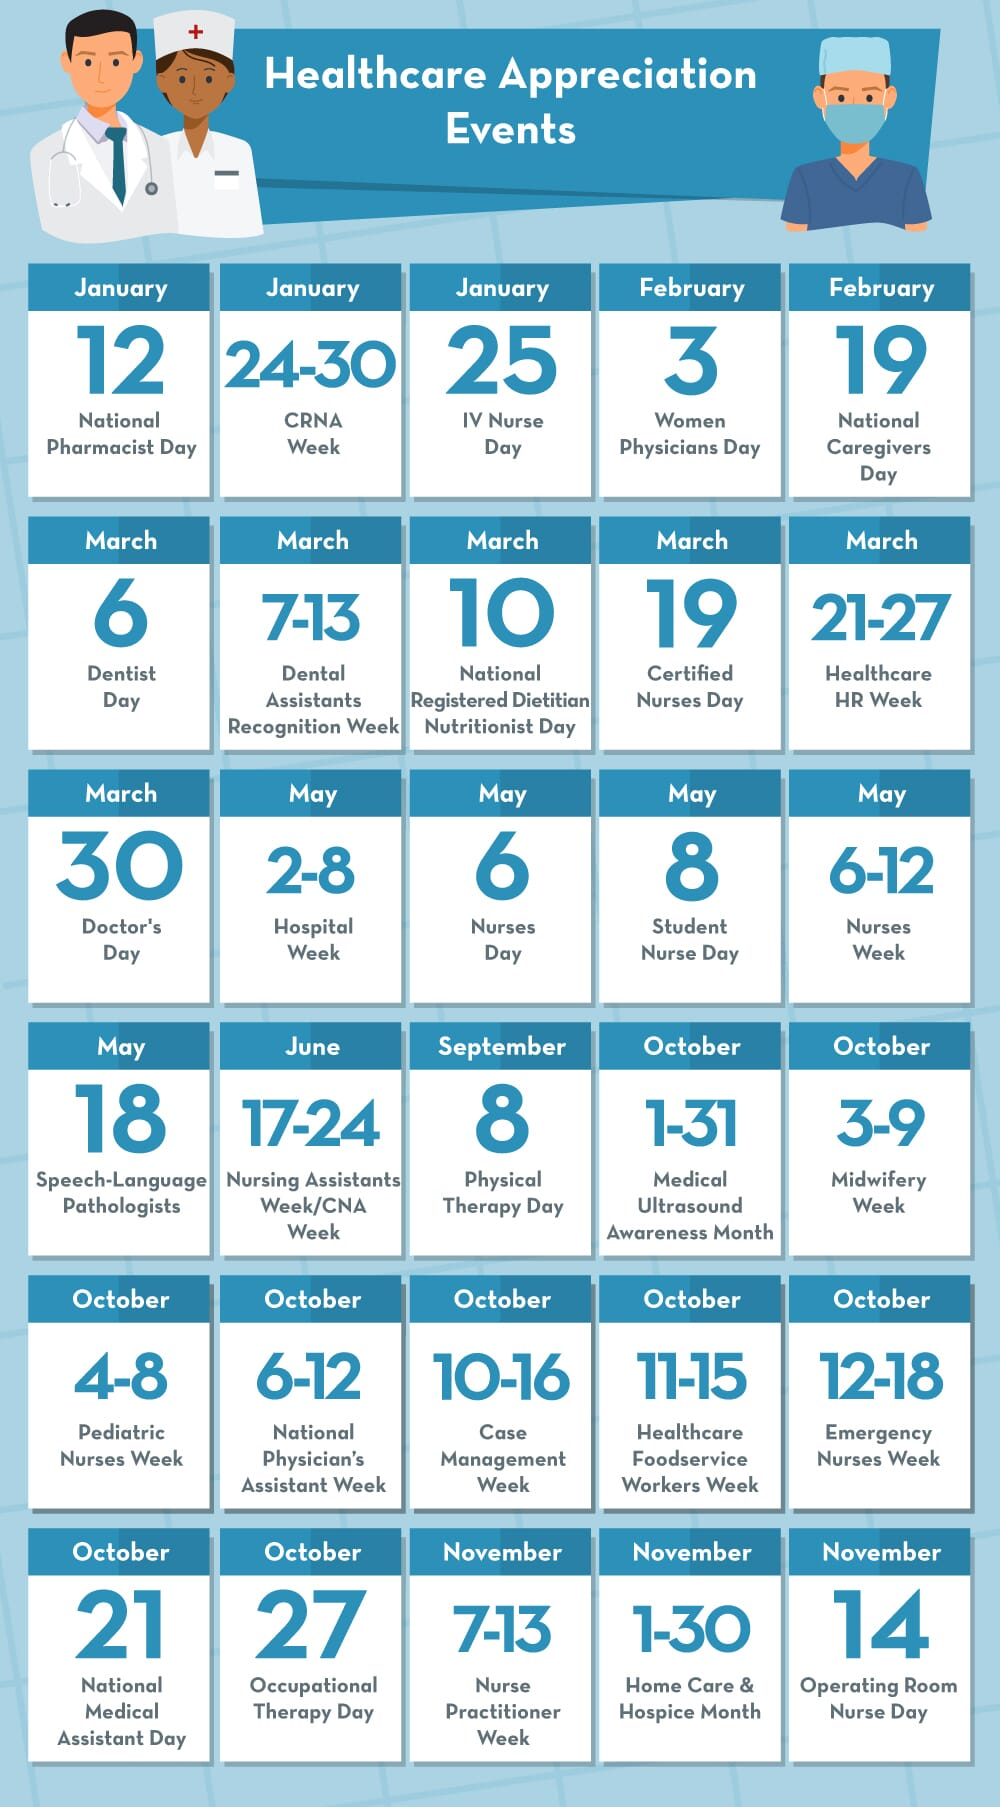 Healthcare appreciation holidays calendar